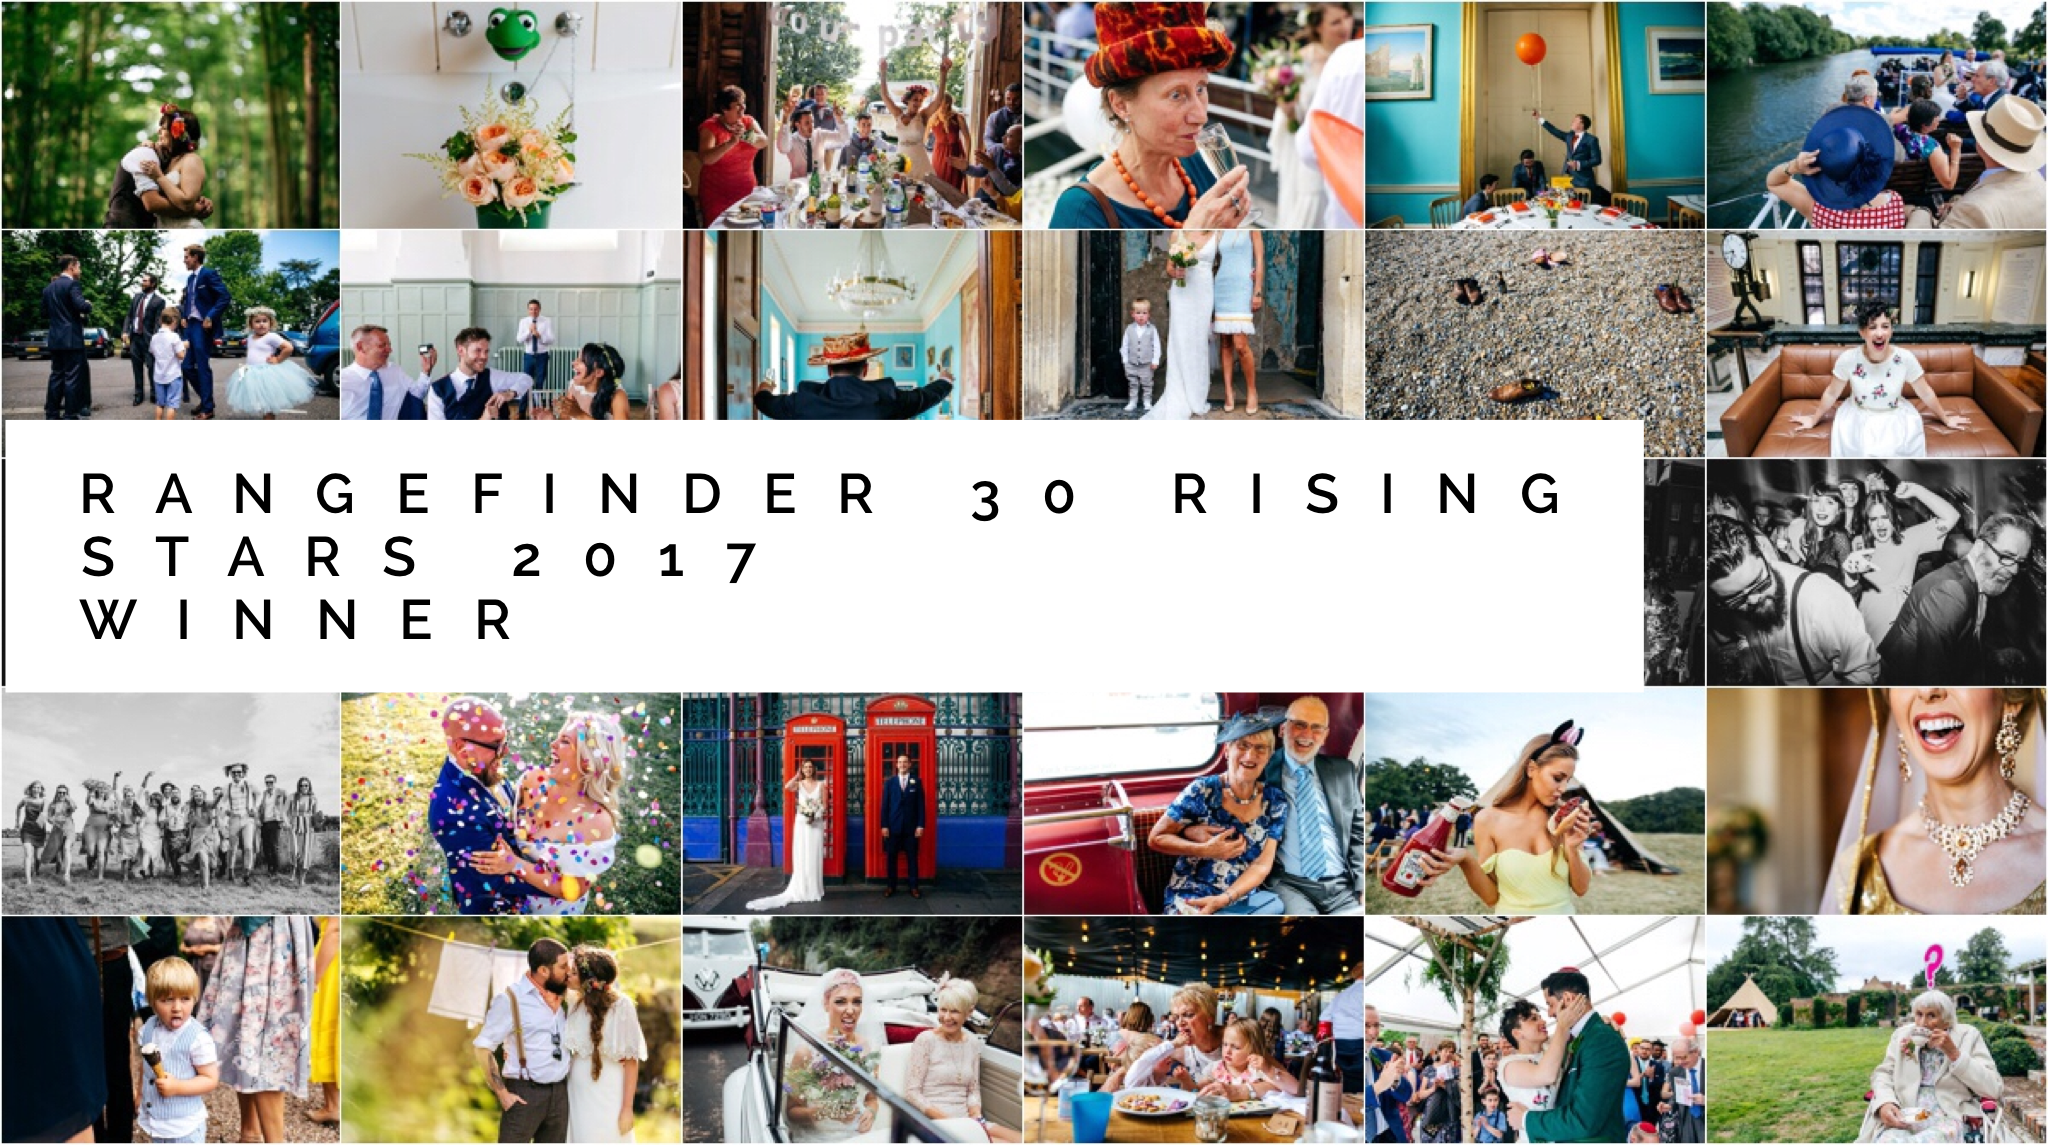 Rangefinder Rising Stars Winner 2017 - collection of award winning wedding images